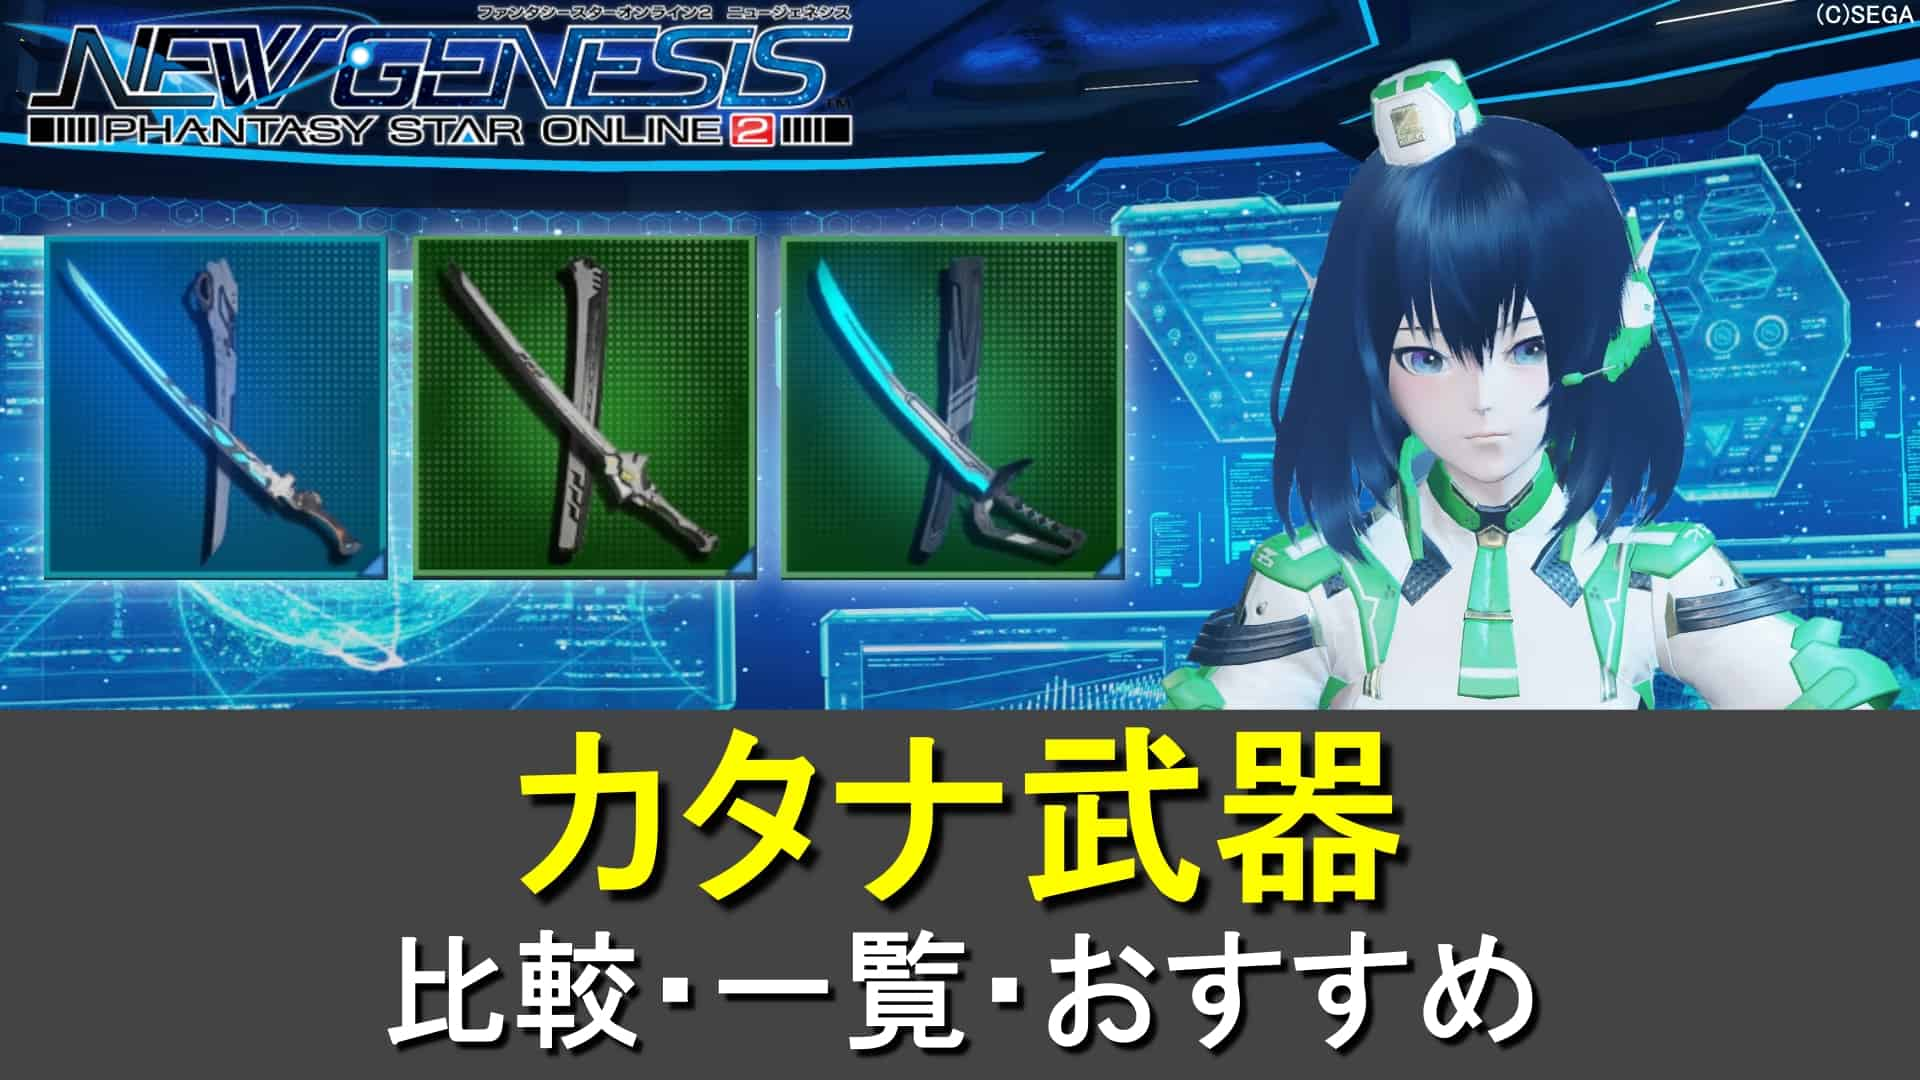 【PSO2NGS】カタナ武器の一覧、潜在まとめ